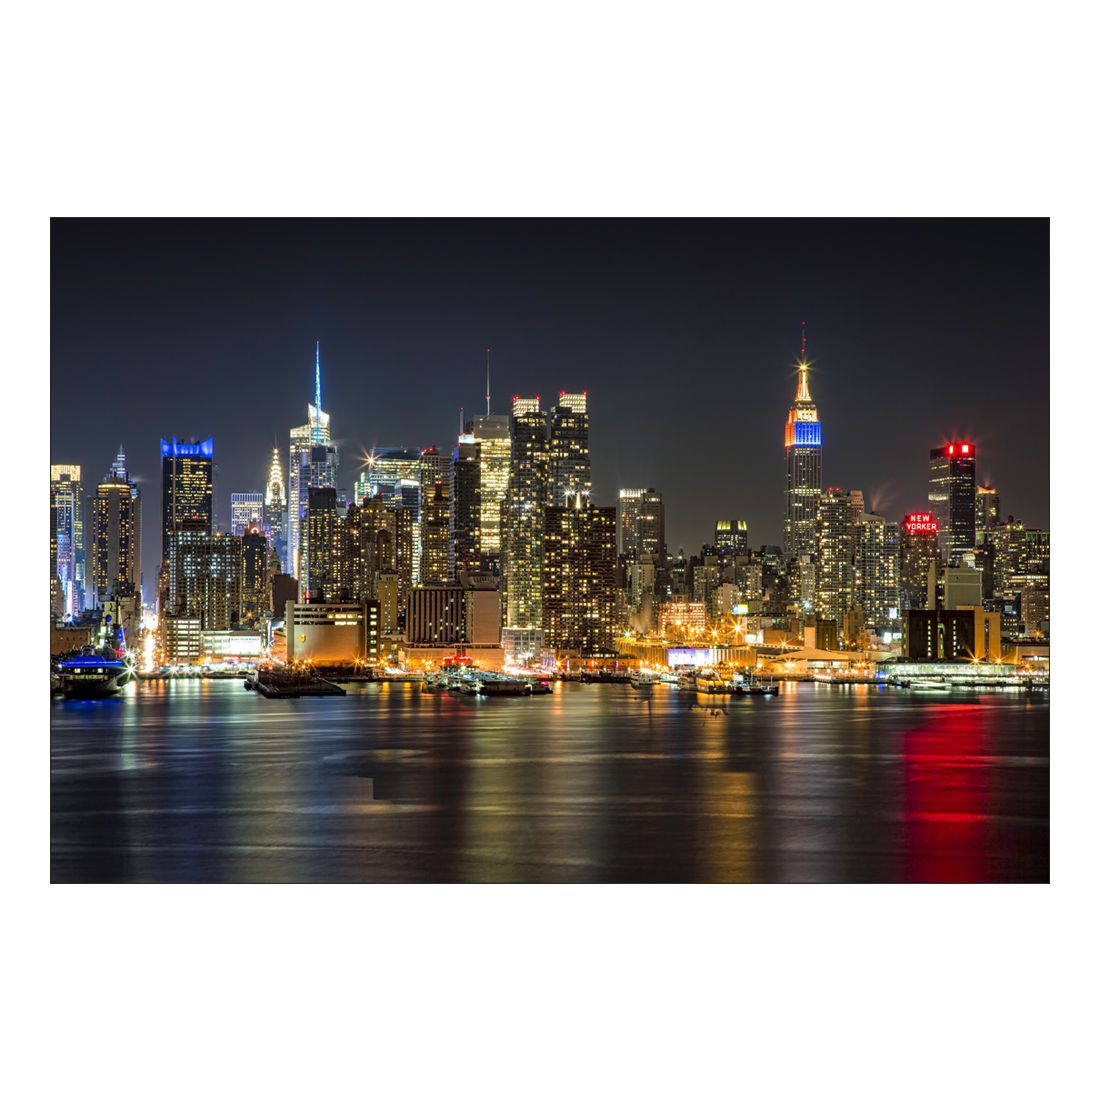 Acrylglasbild New York Skyline at Nigh – Abmessung 75×50 cm, Gallery of Innovative Art günstig online kaufen